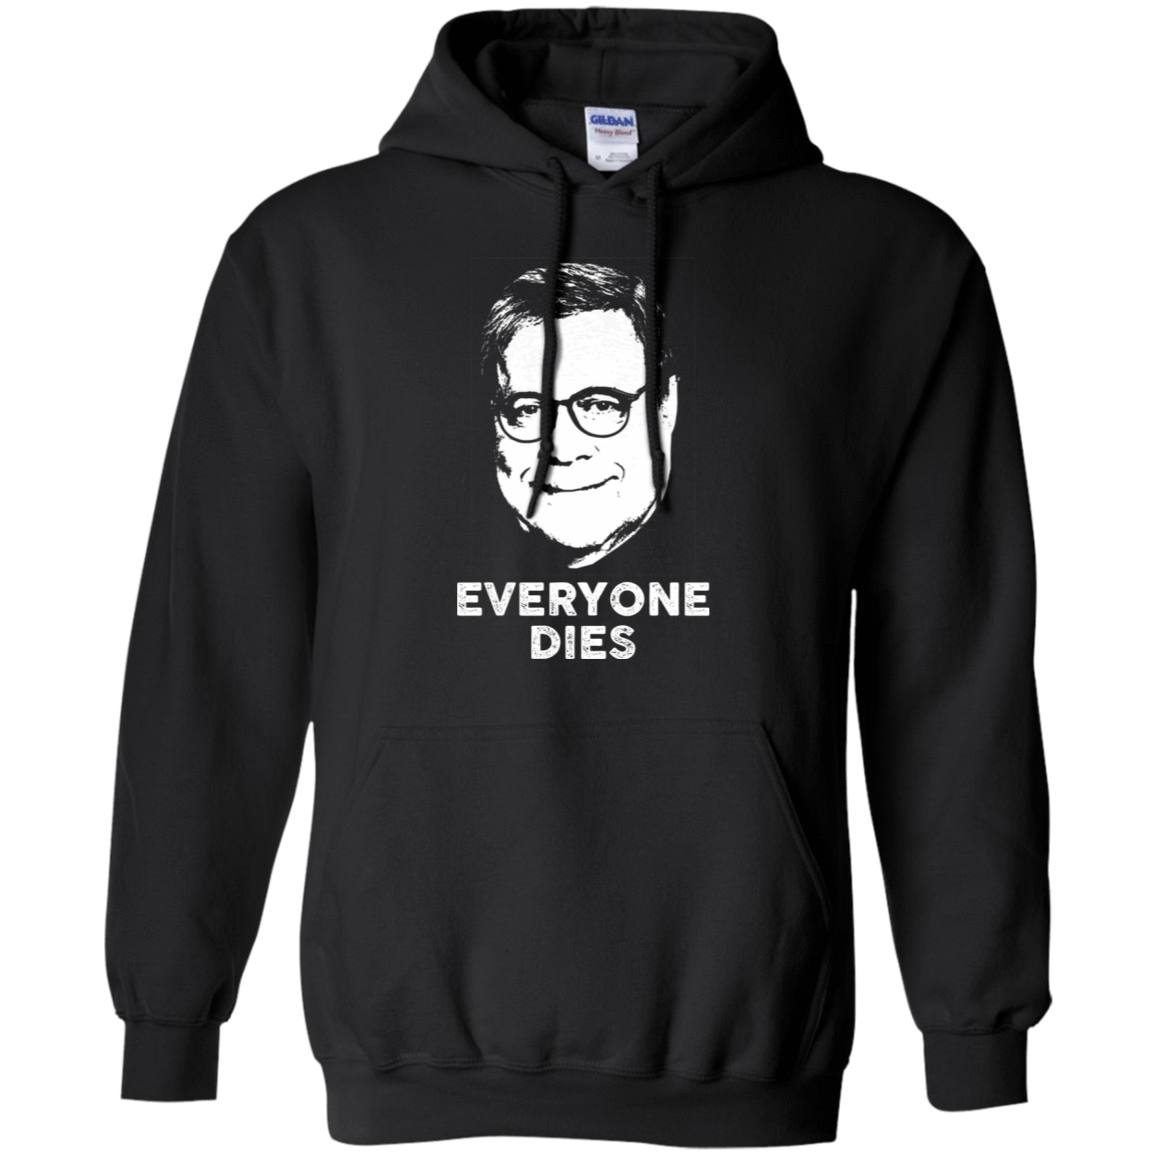 Everyone Dies William Barr T-Shirts, Hoodie, Tank 541-4740-78811305-23087 - Tee Ript